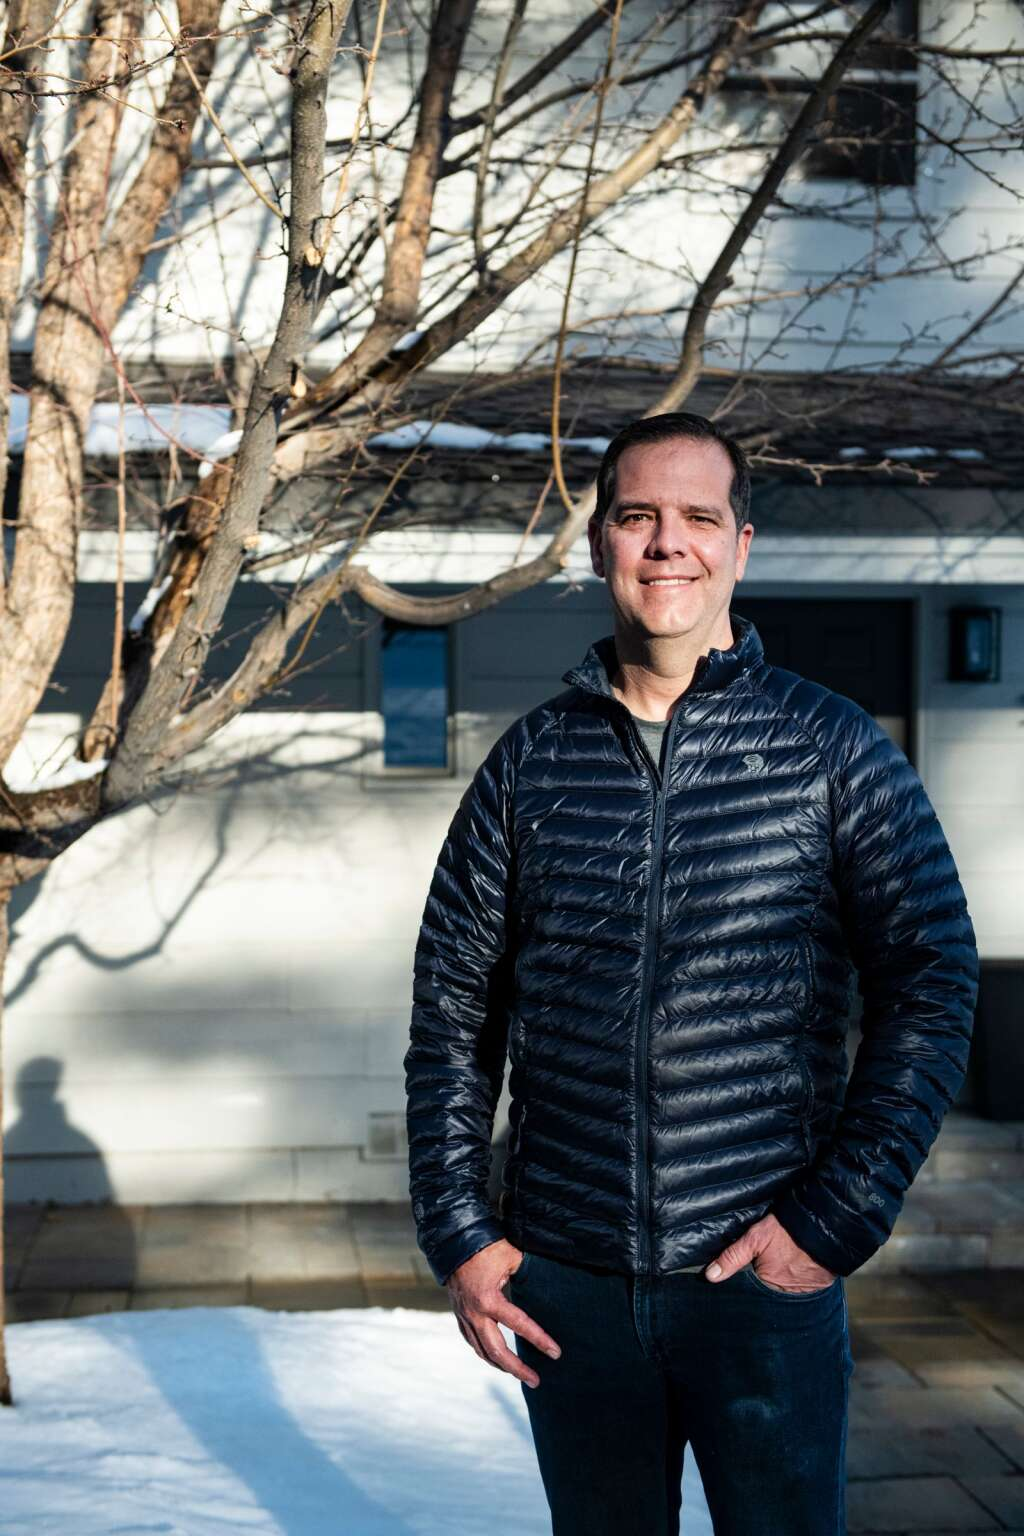 Dr. Greg Balko, emergency medicine physician and director of board at Aspen Valley Hospital, poses for a portrait outside of his home in Snowmass Village on Monday, Jan. 4, 2021. (Kelsey Brunner/The Aspen Times)